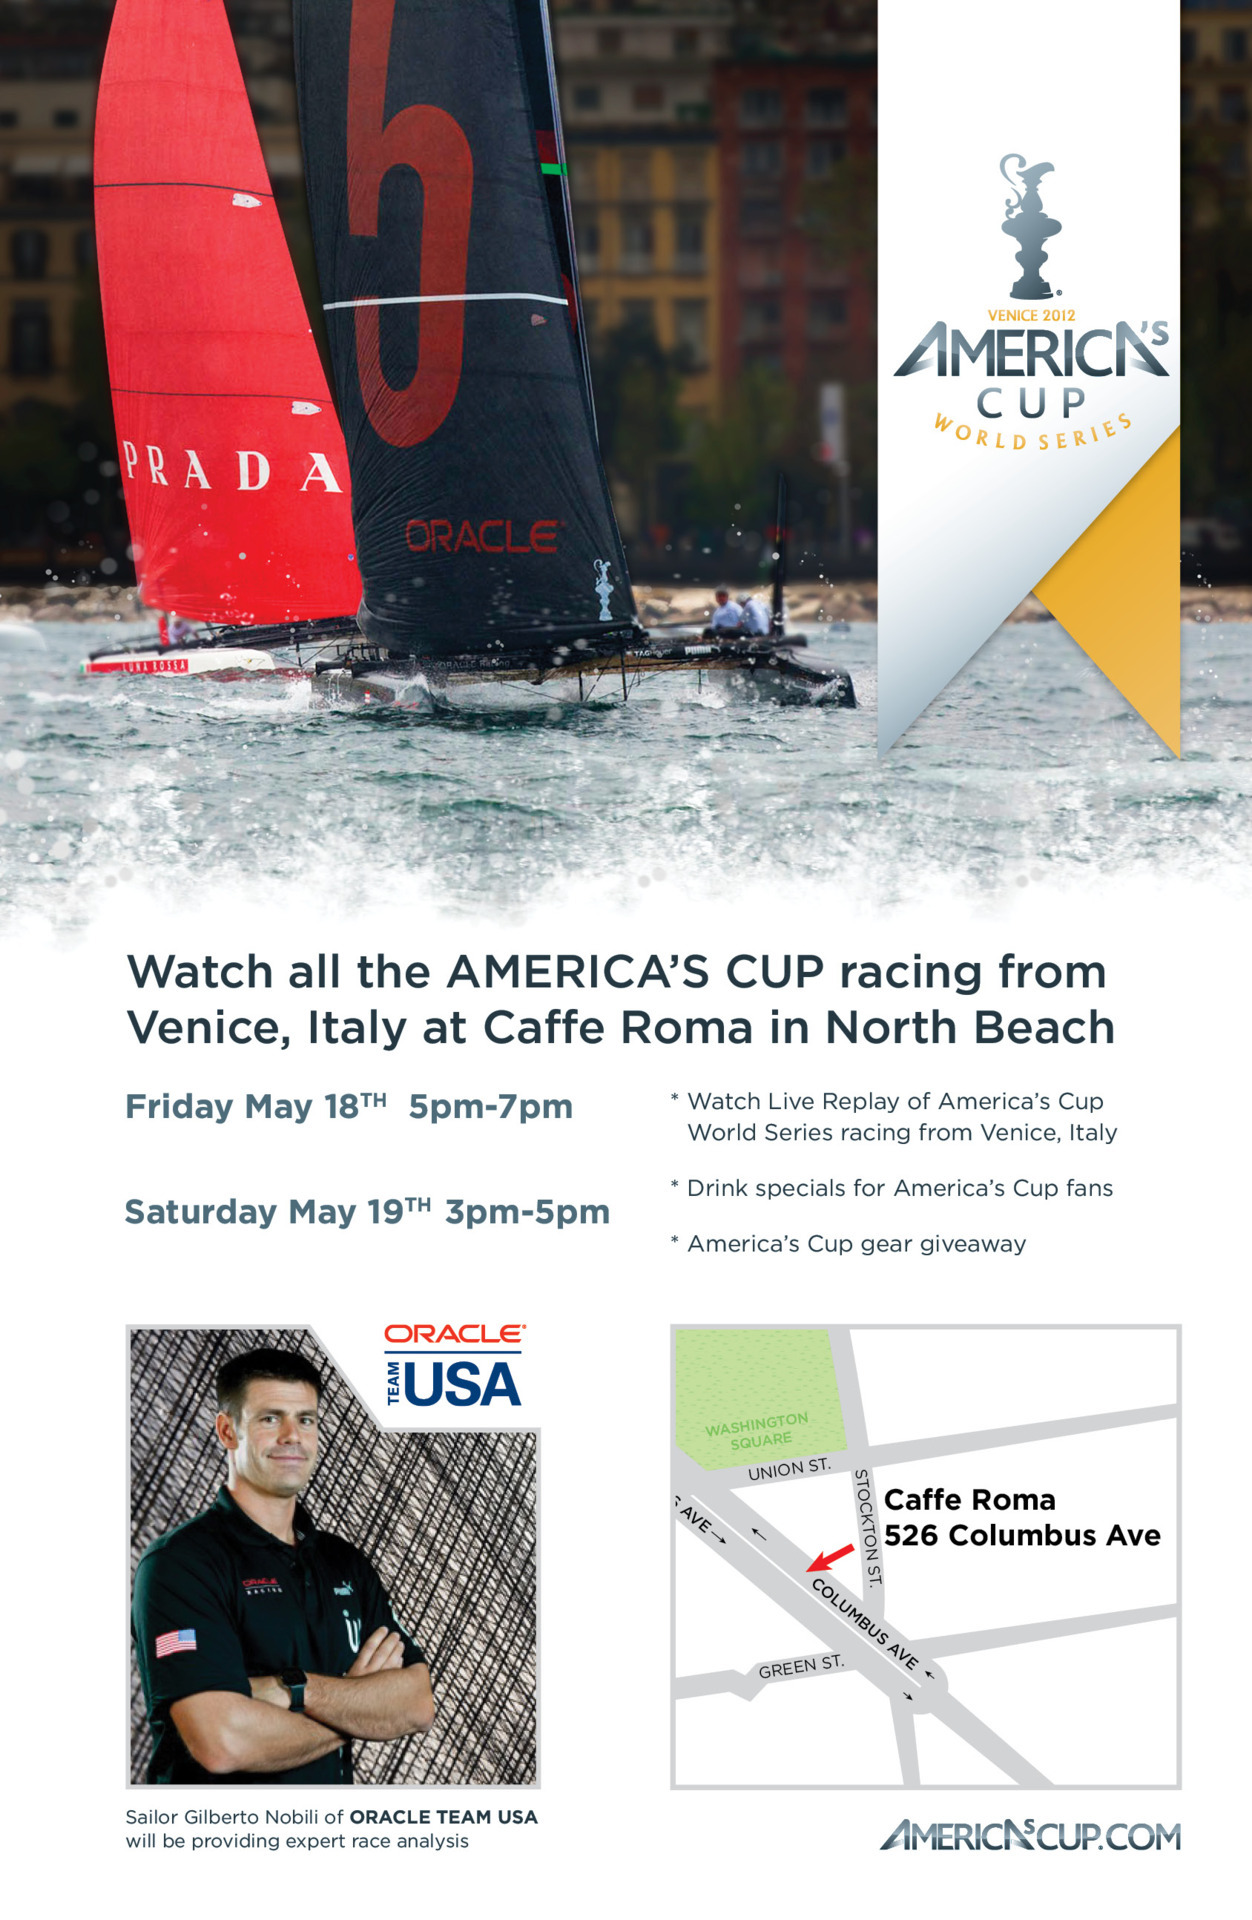 Watch all the America's Cup @racing from Venice, Italy at Caffe Roma in in North Beach.  Mary 18 -19  #ACWSVenice